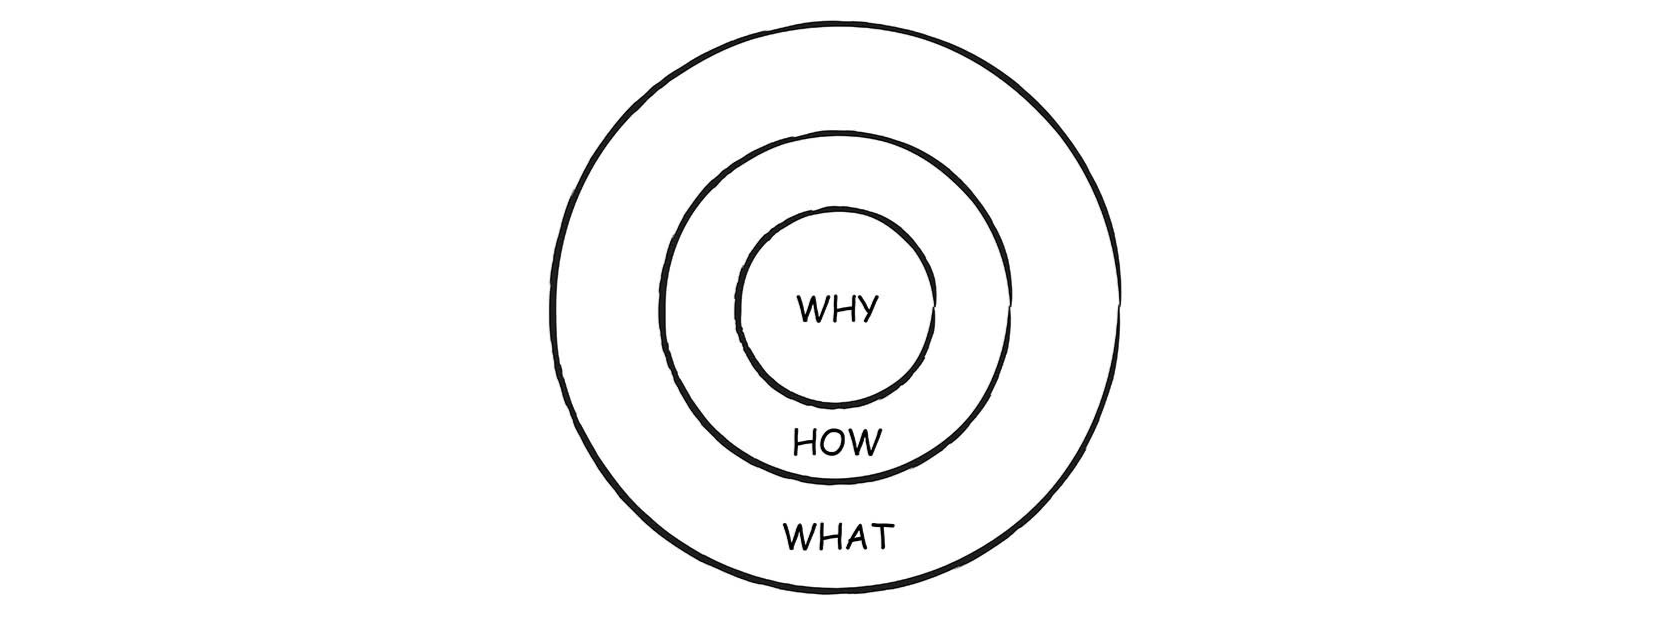 A simple drawing of circles and text